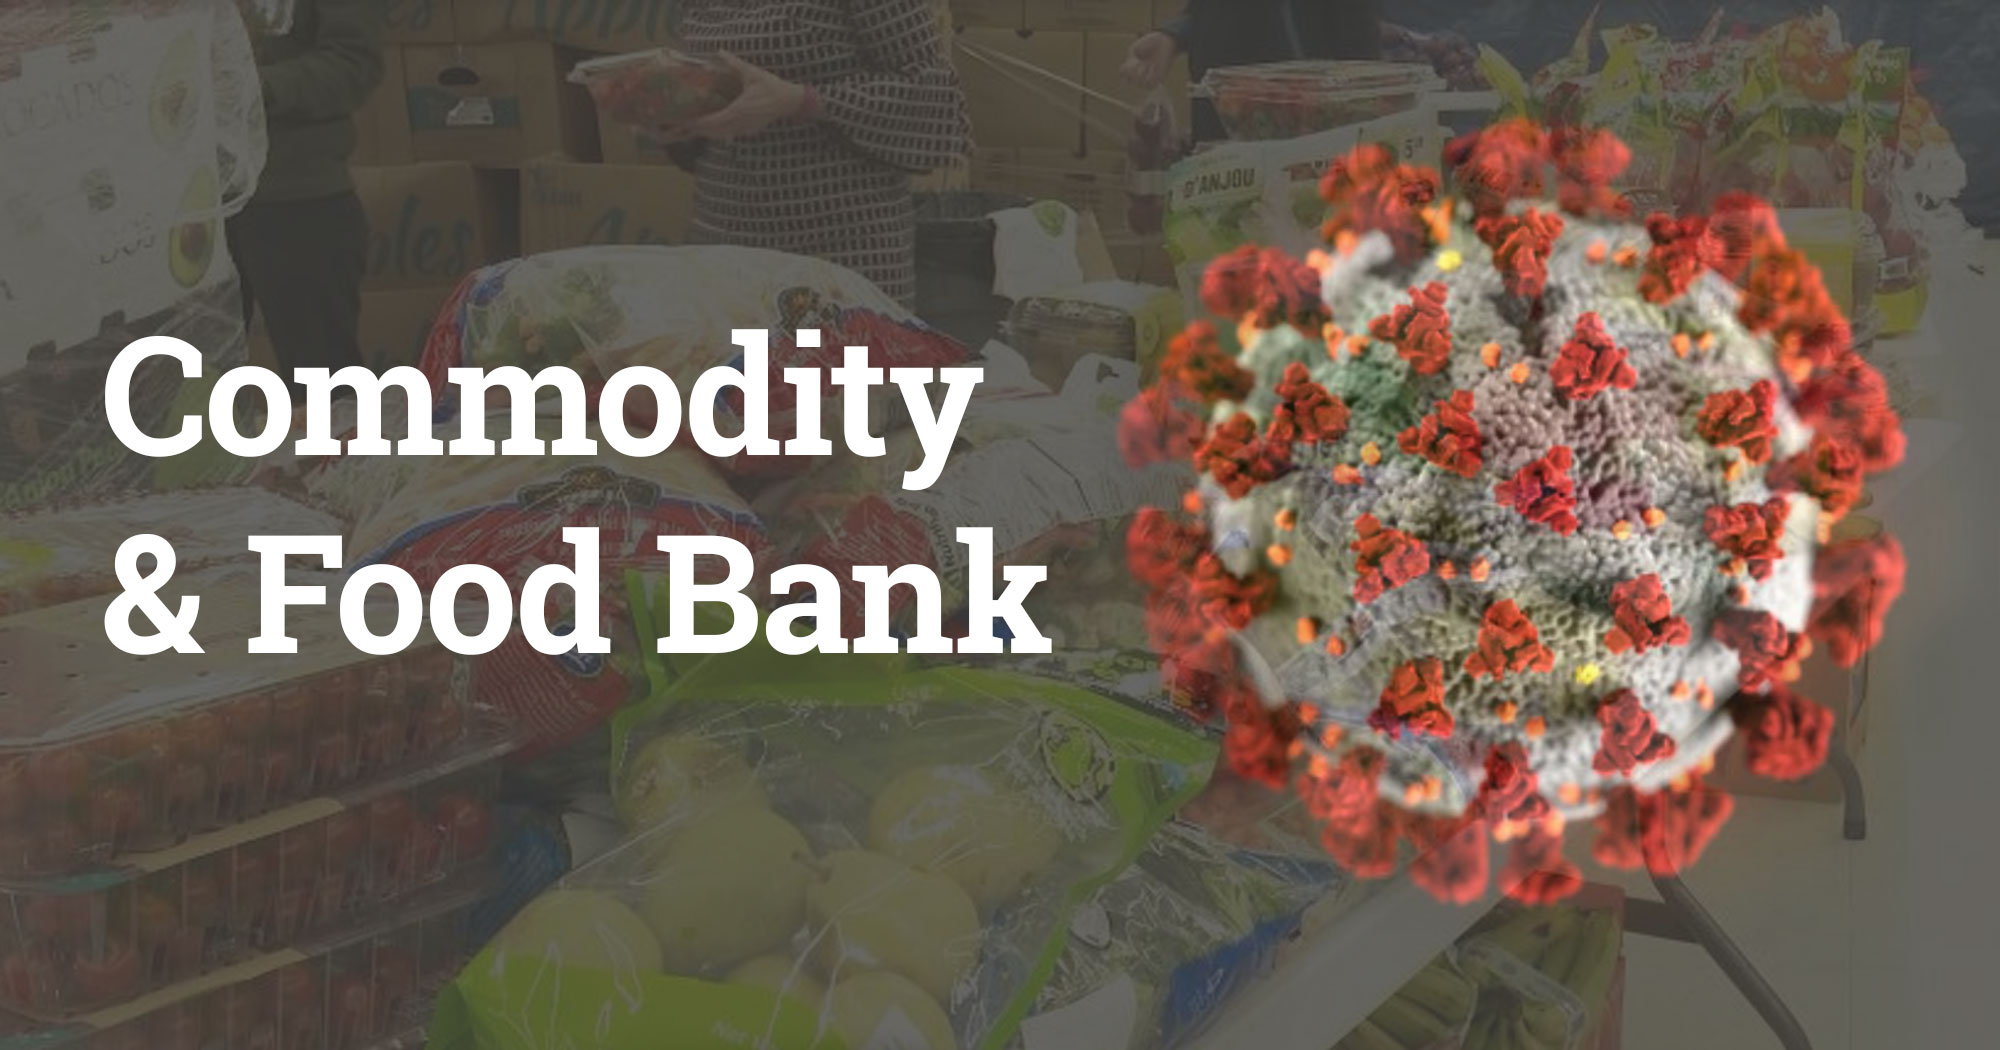 Commodity & Food Bank